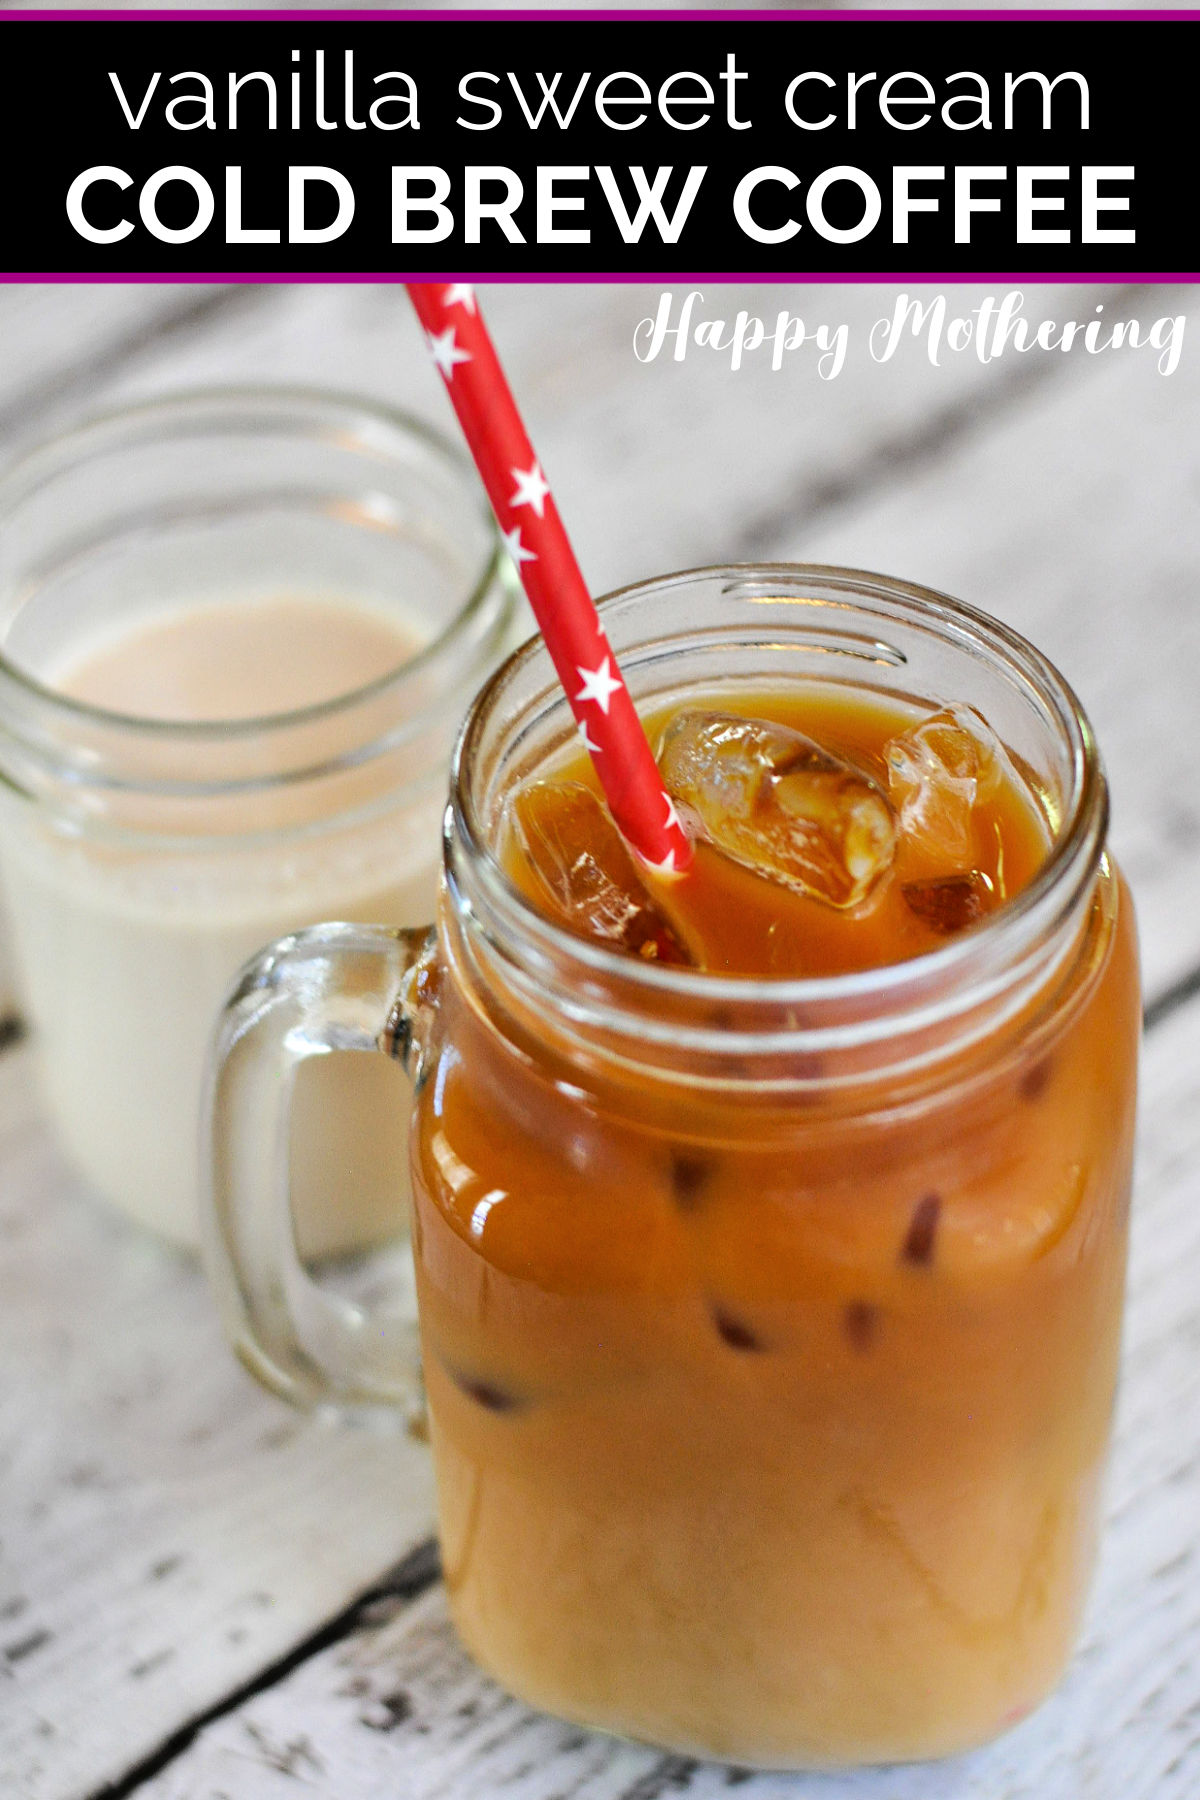 Mason jar with a handle filled with homemade vanilla sweet cream cold brew coffee